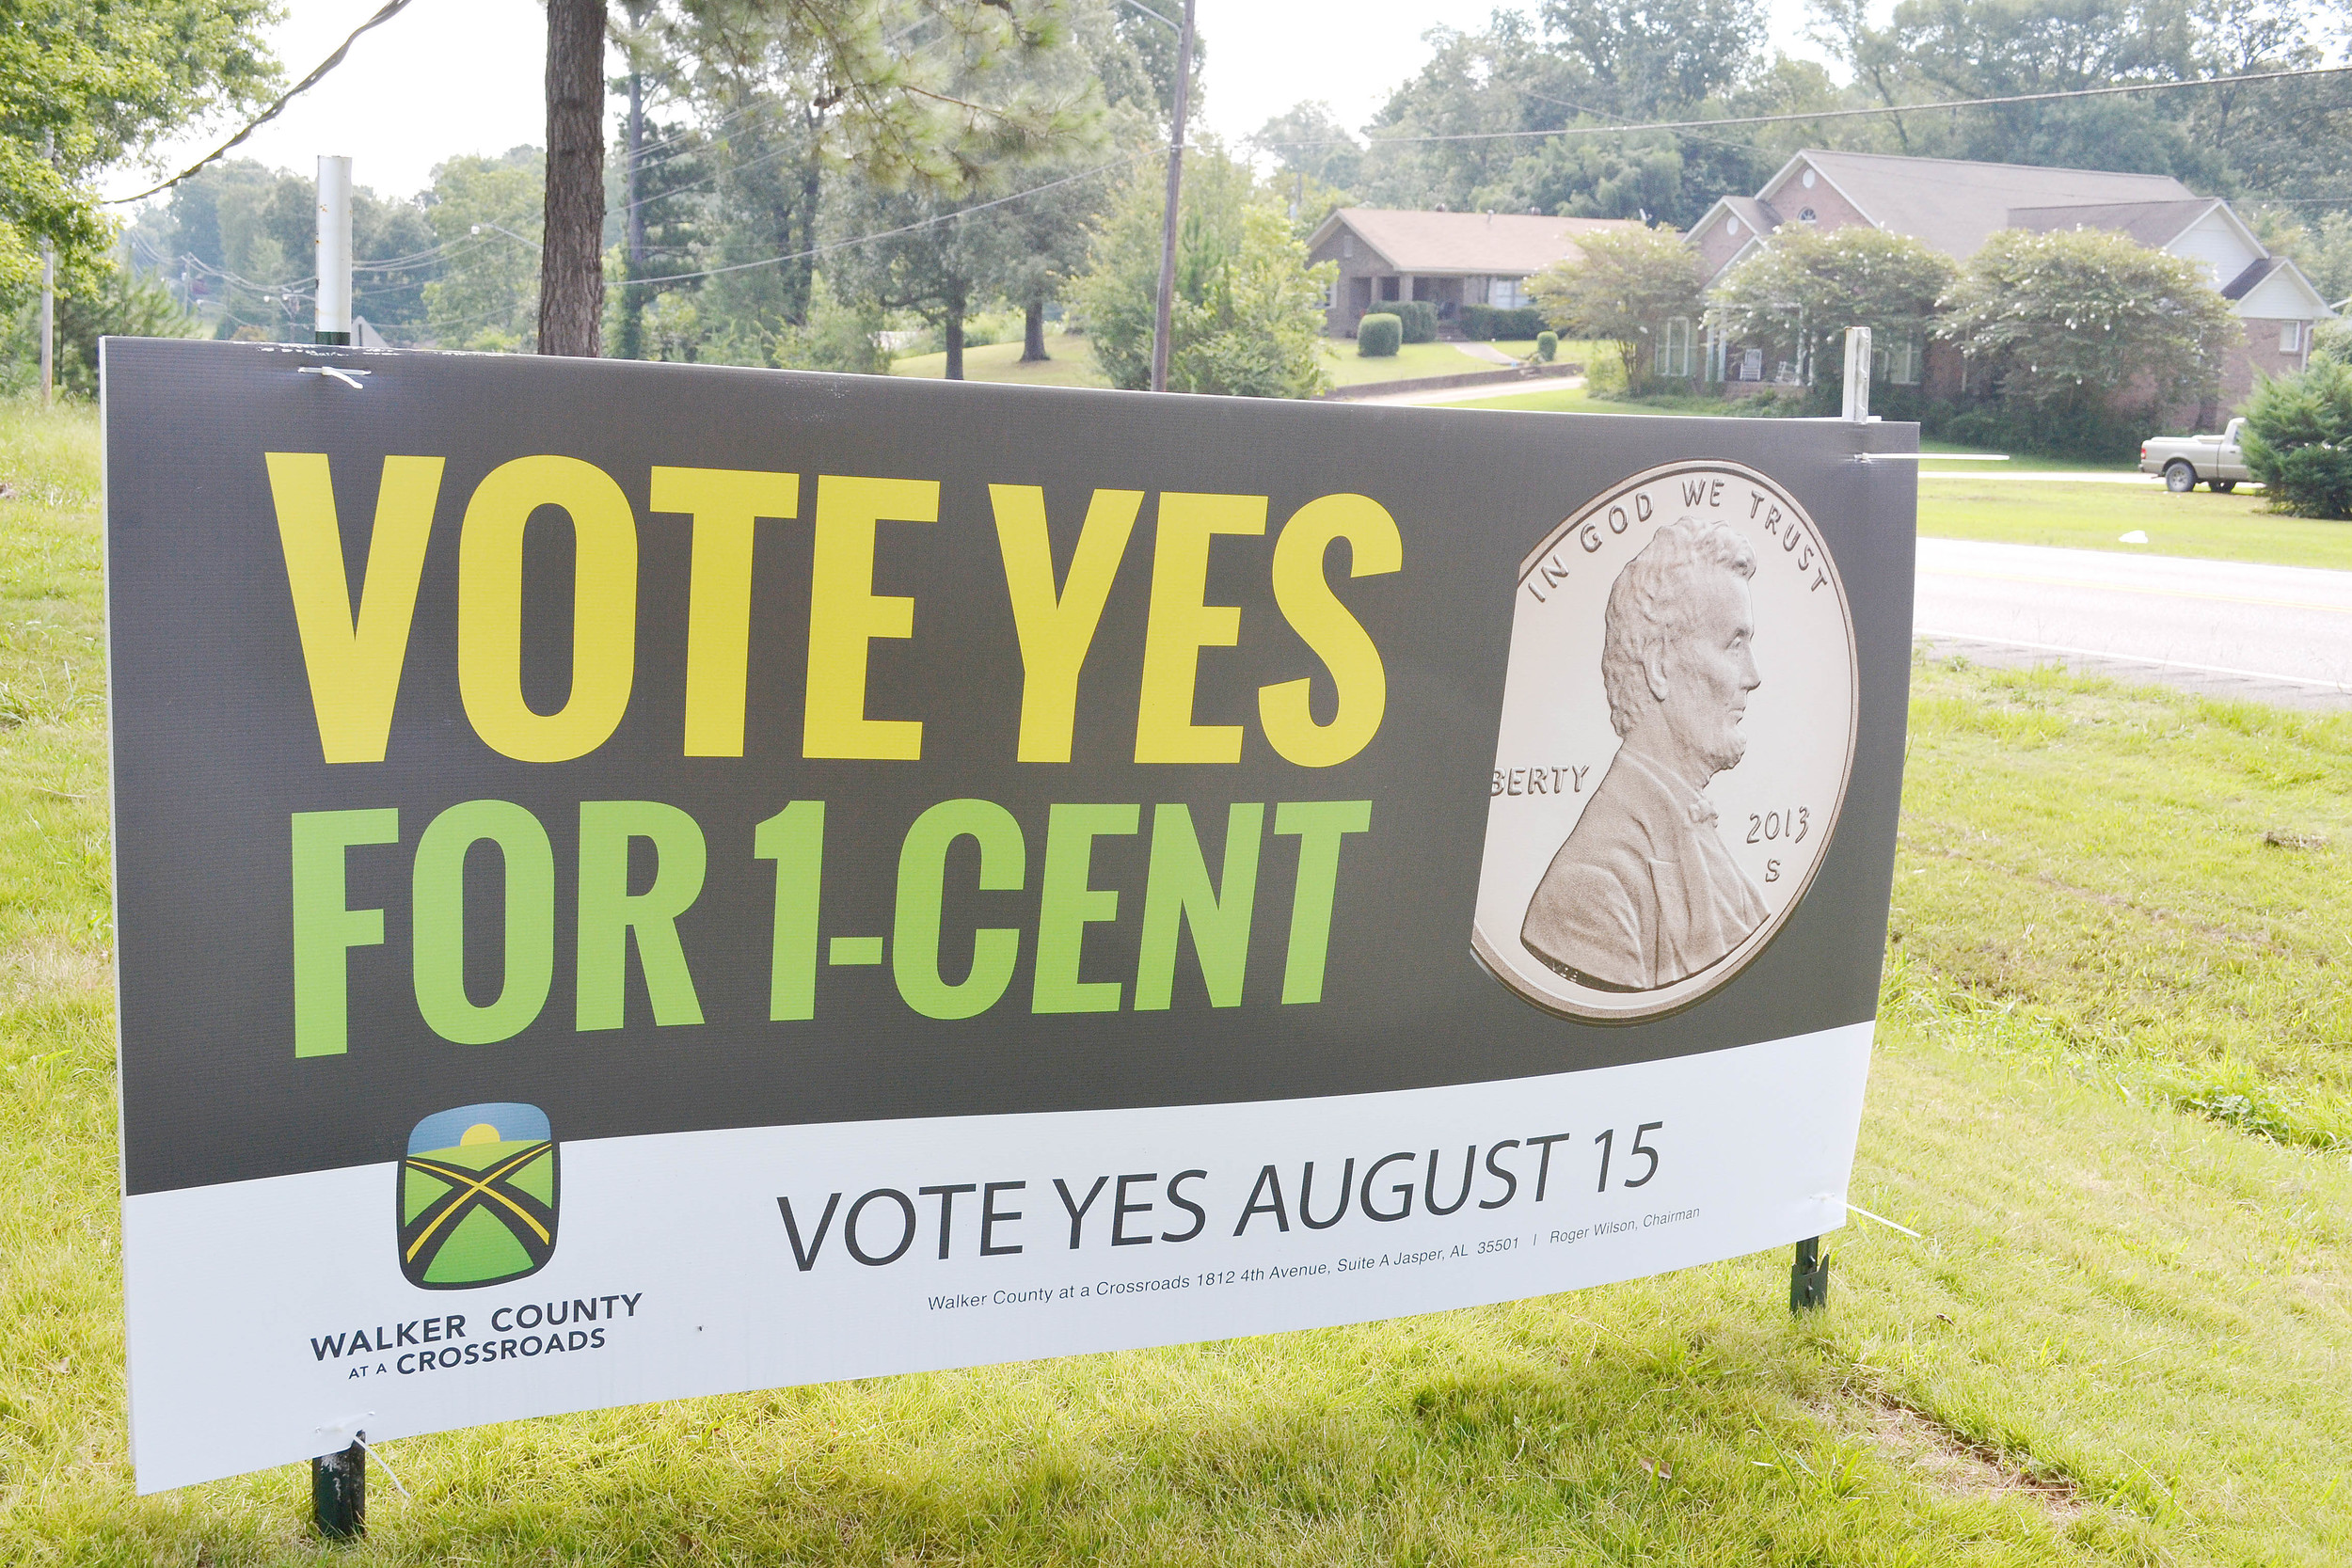 This yard sign in favor of passing the county's 1-cent sales tax proposal Tuesday was displayed at a home on Highway 69 South near the old National Guard Jasper. Daily Mountain Eagle - Ed Howell